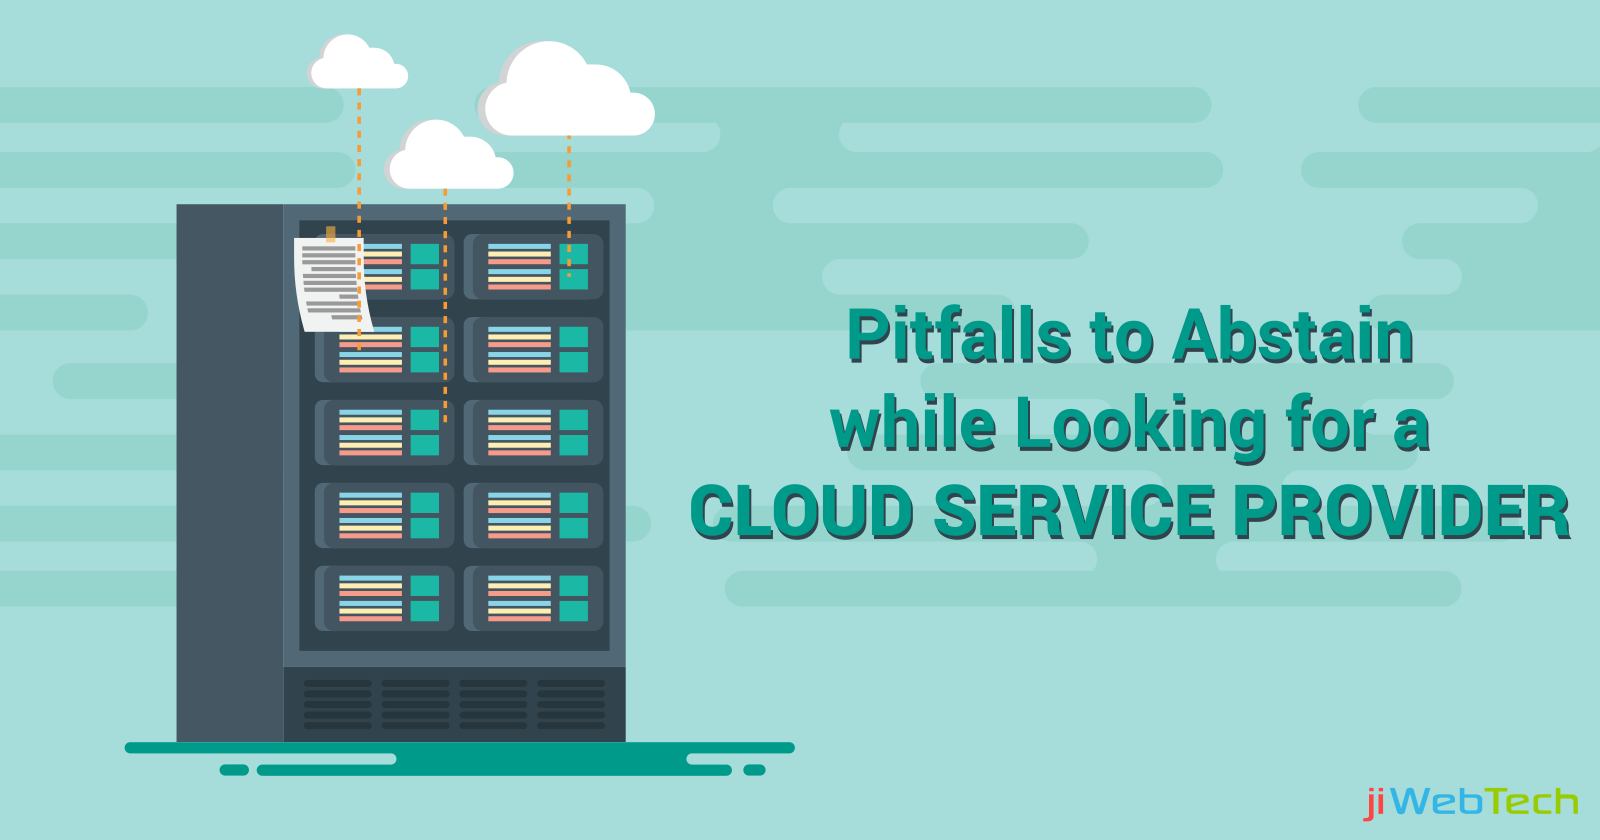 Pitfalls to Abstain while Looking for a Cloud Service Provider